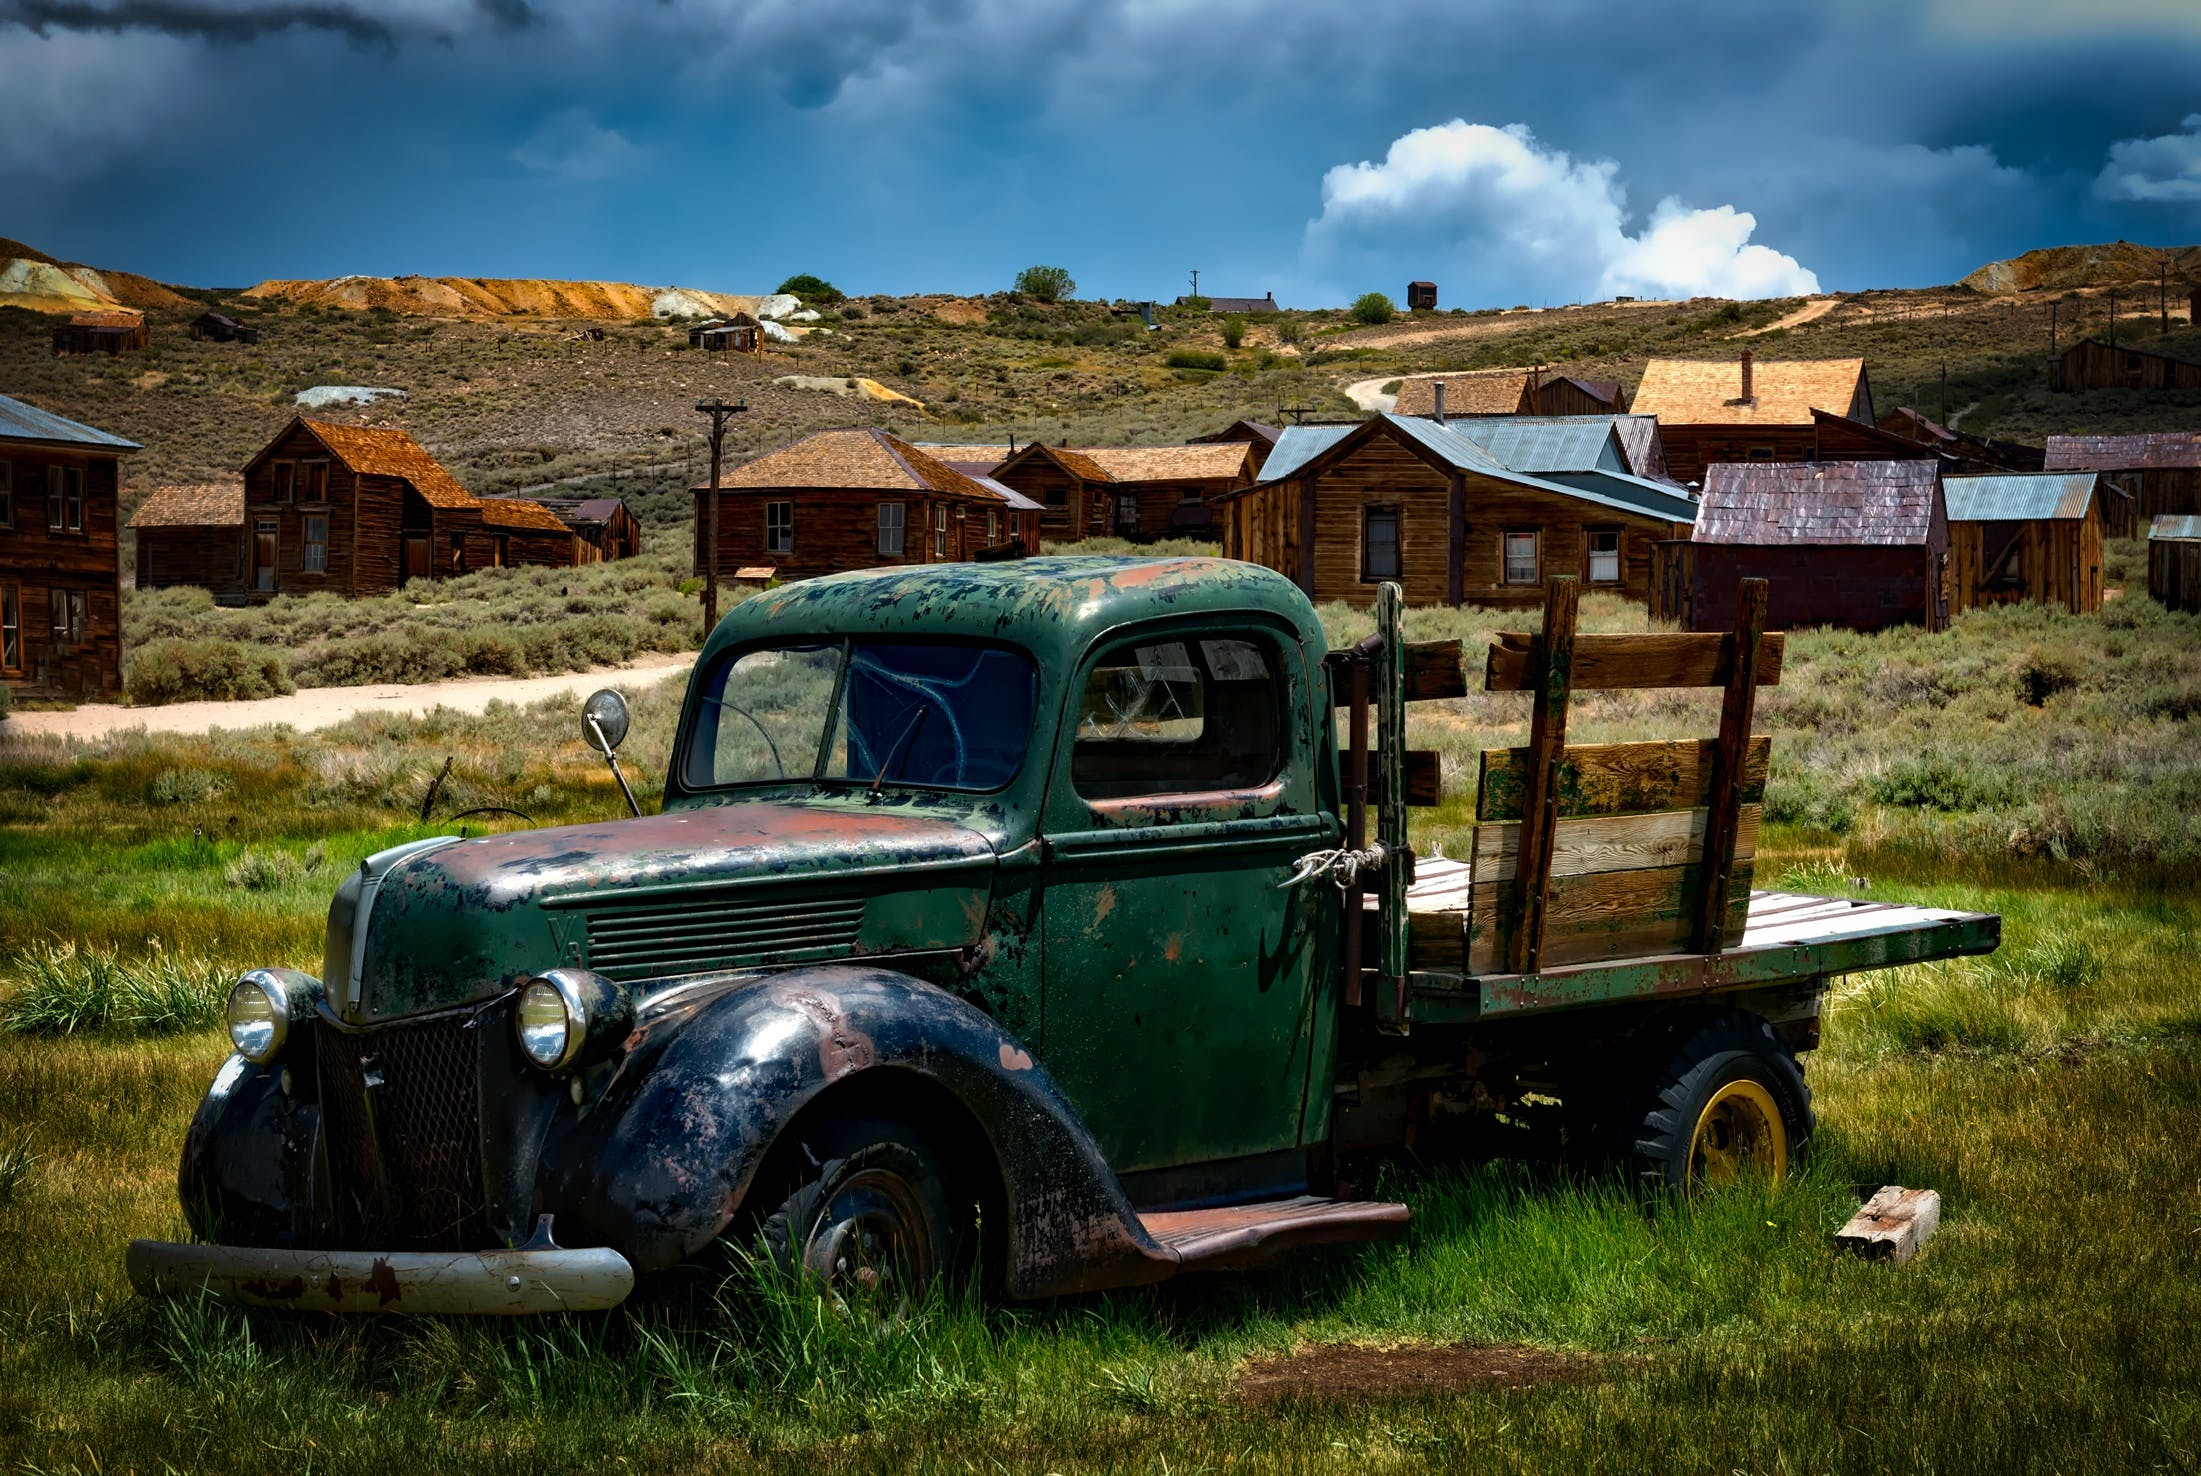 Free stock photo of landscape, vintage, california, old